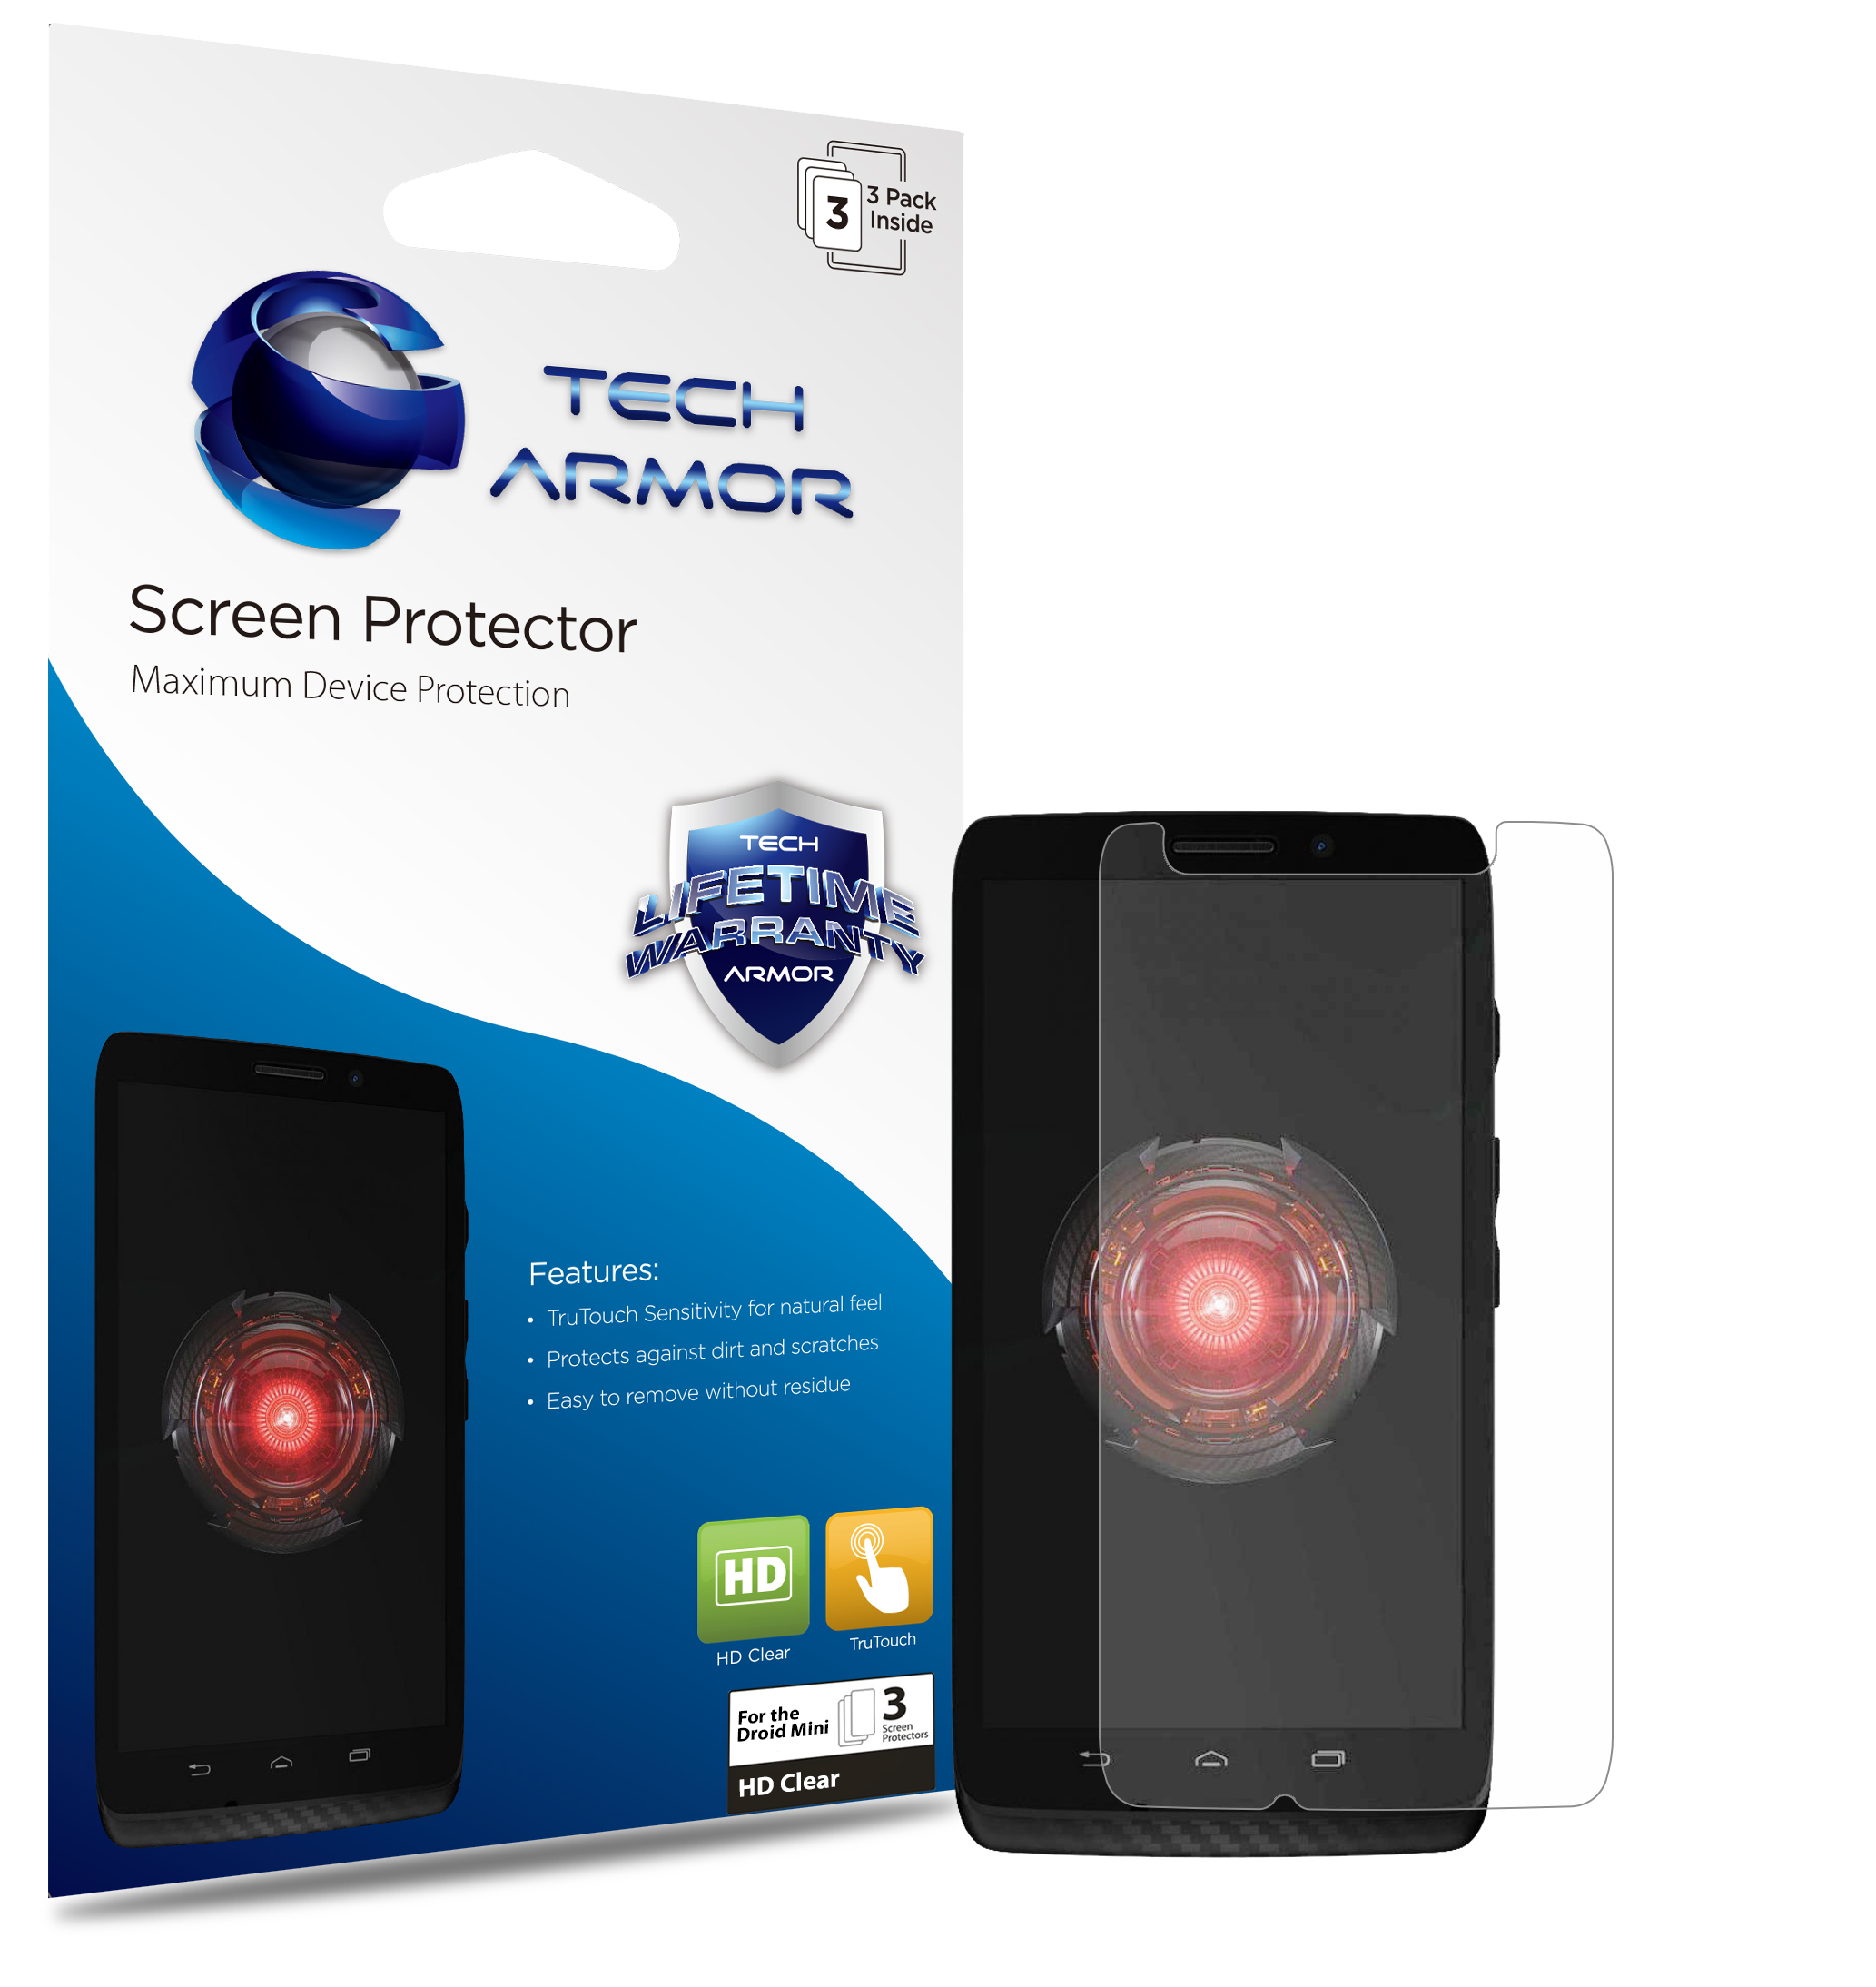 Tech Armor Verizon Motorola Droid MINI Smartphone Premium High Definition (HD) Clear Screen Protector with Lifetime Warranty [3-PACK] - Retail Packaging